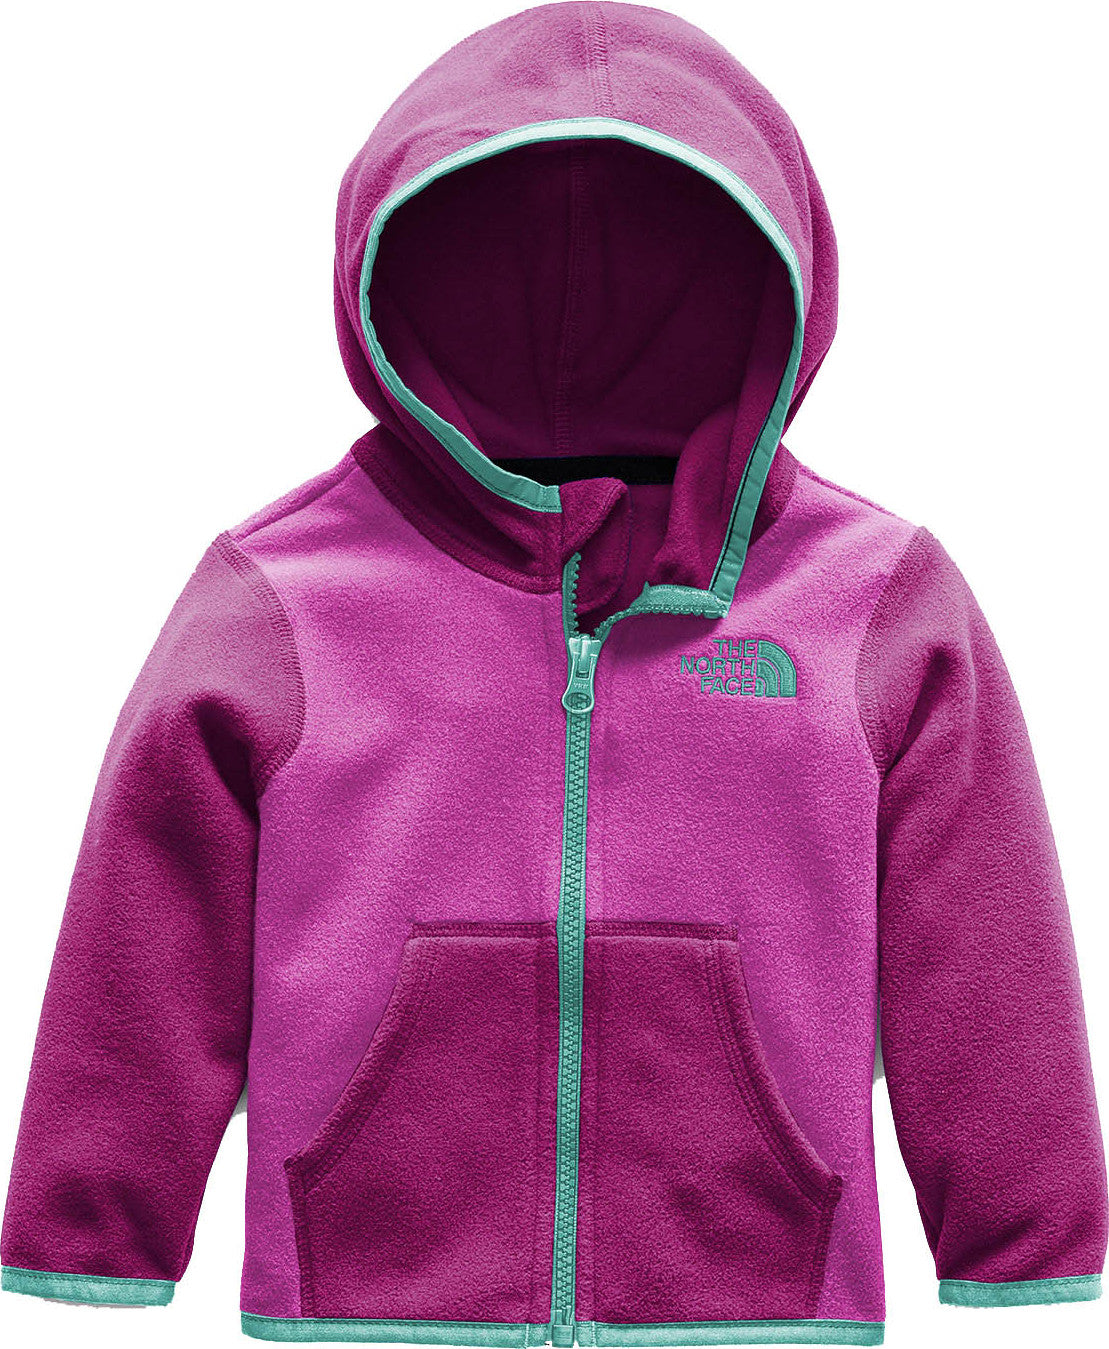 c5d2a0bfd The North Face Infant s Glacier Full Zip Hoodie